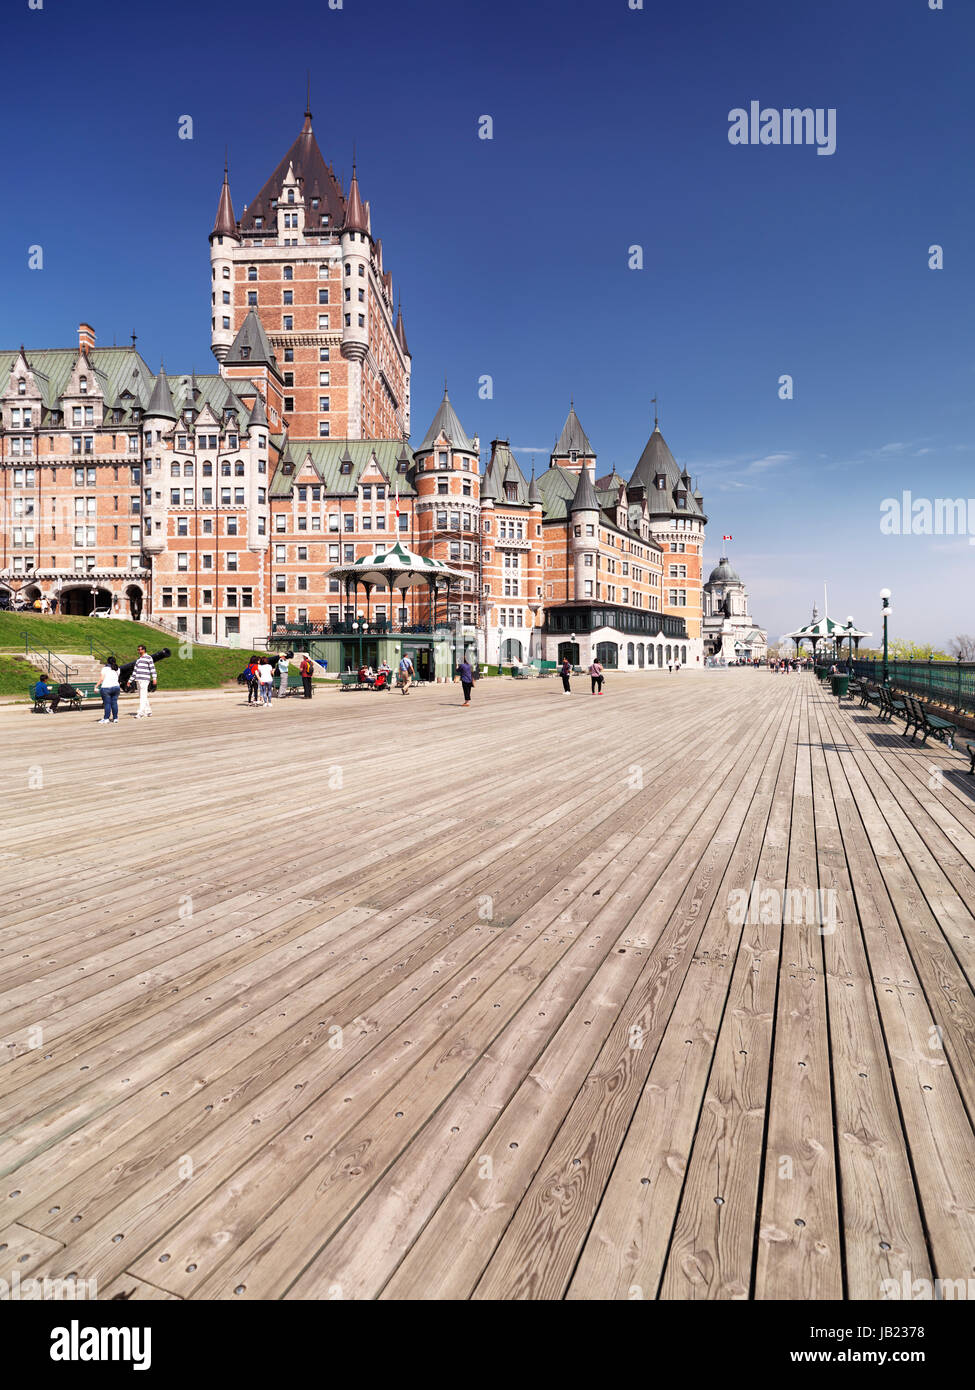 Terrasse Dufferin Boardwalk Terrace By The Fairmont Le Chteau Frontenac Castle On A Bright